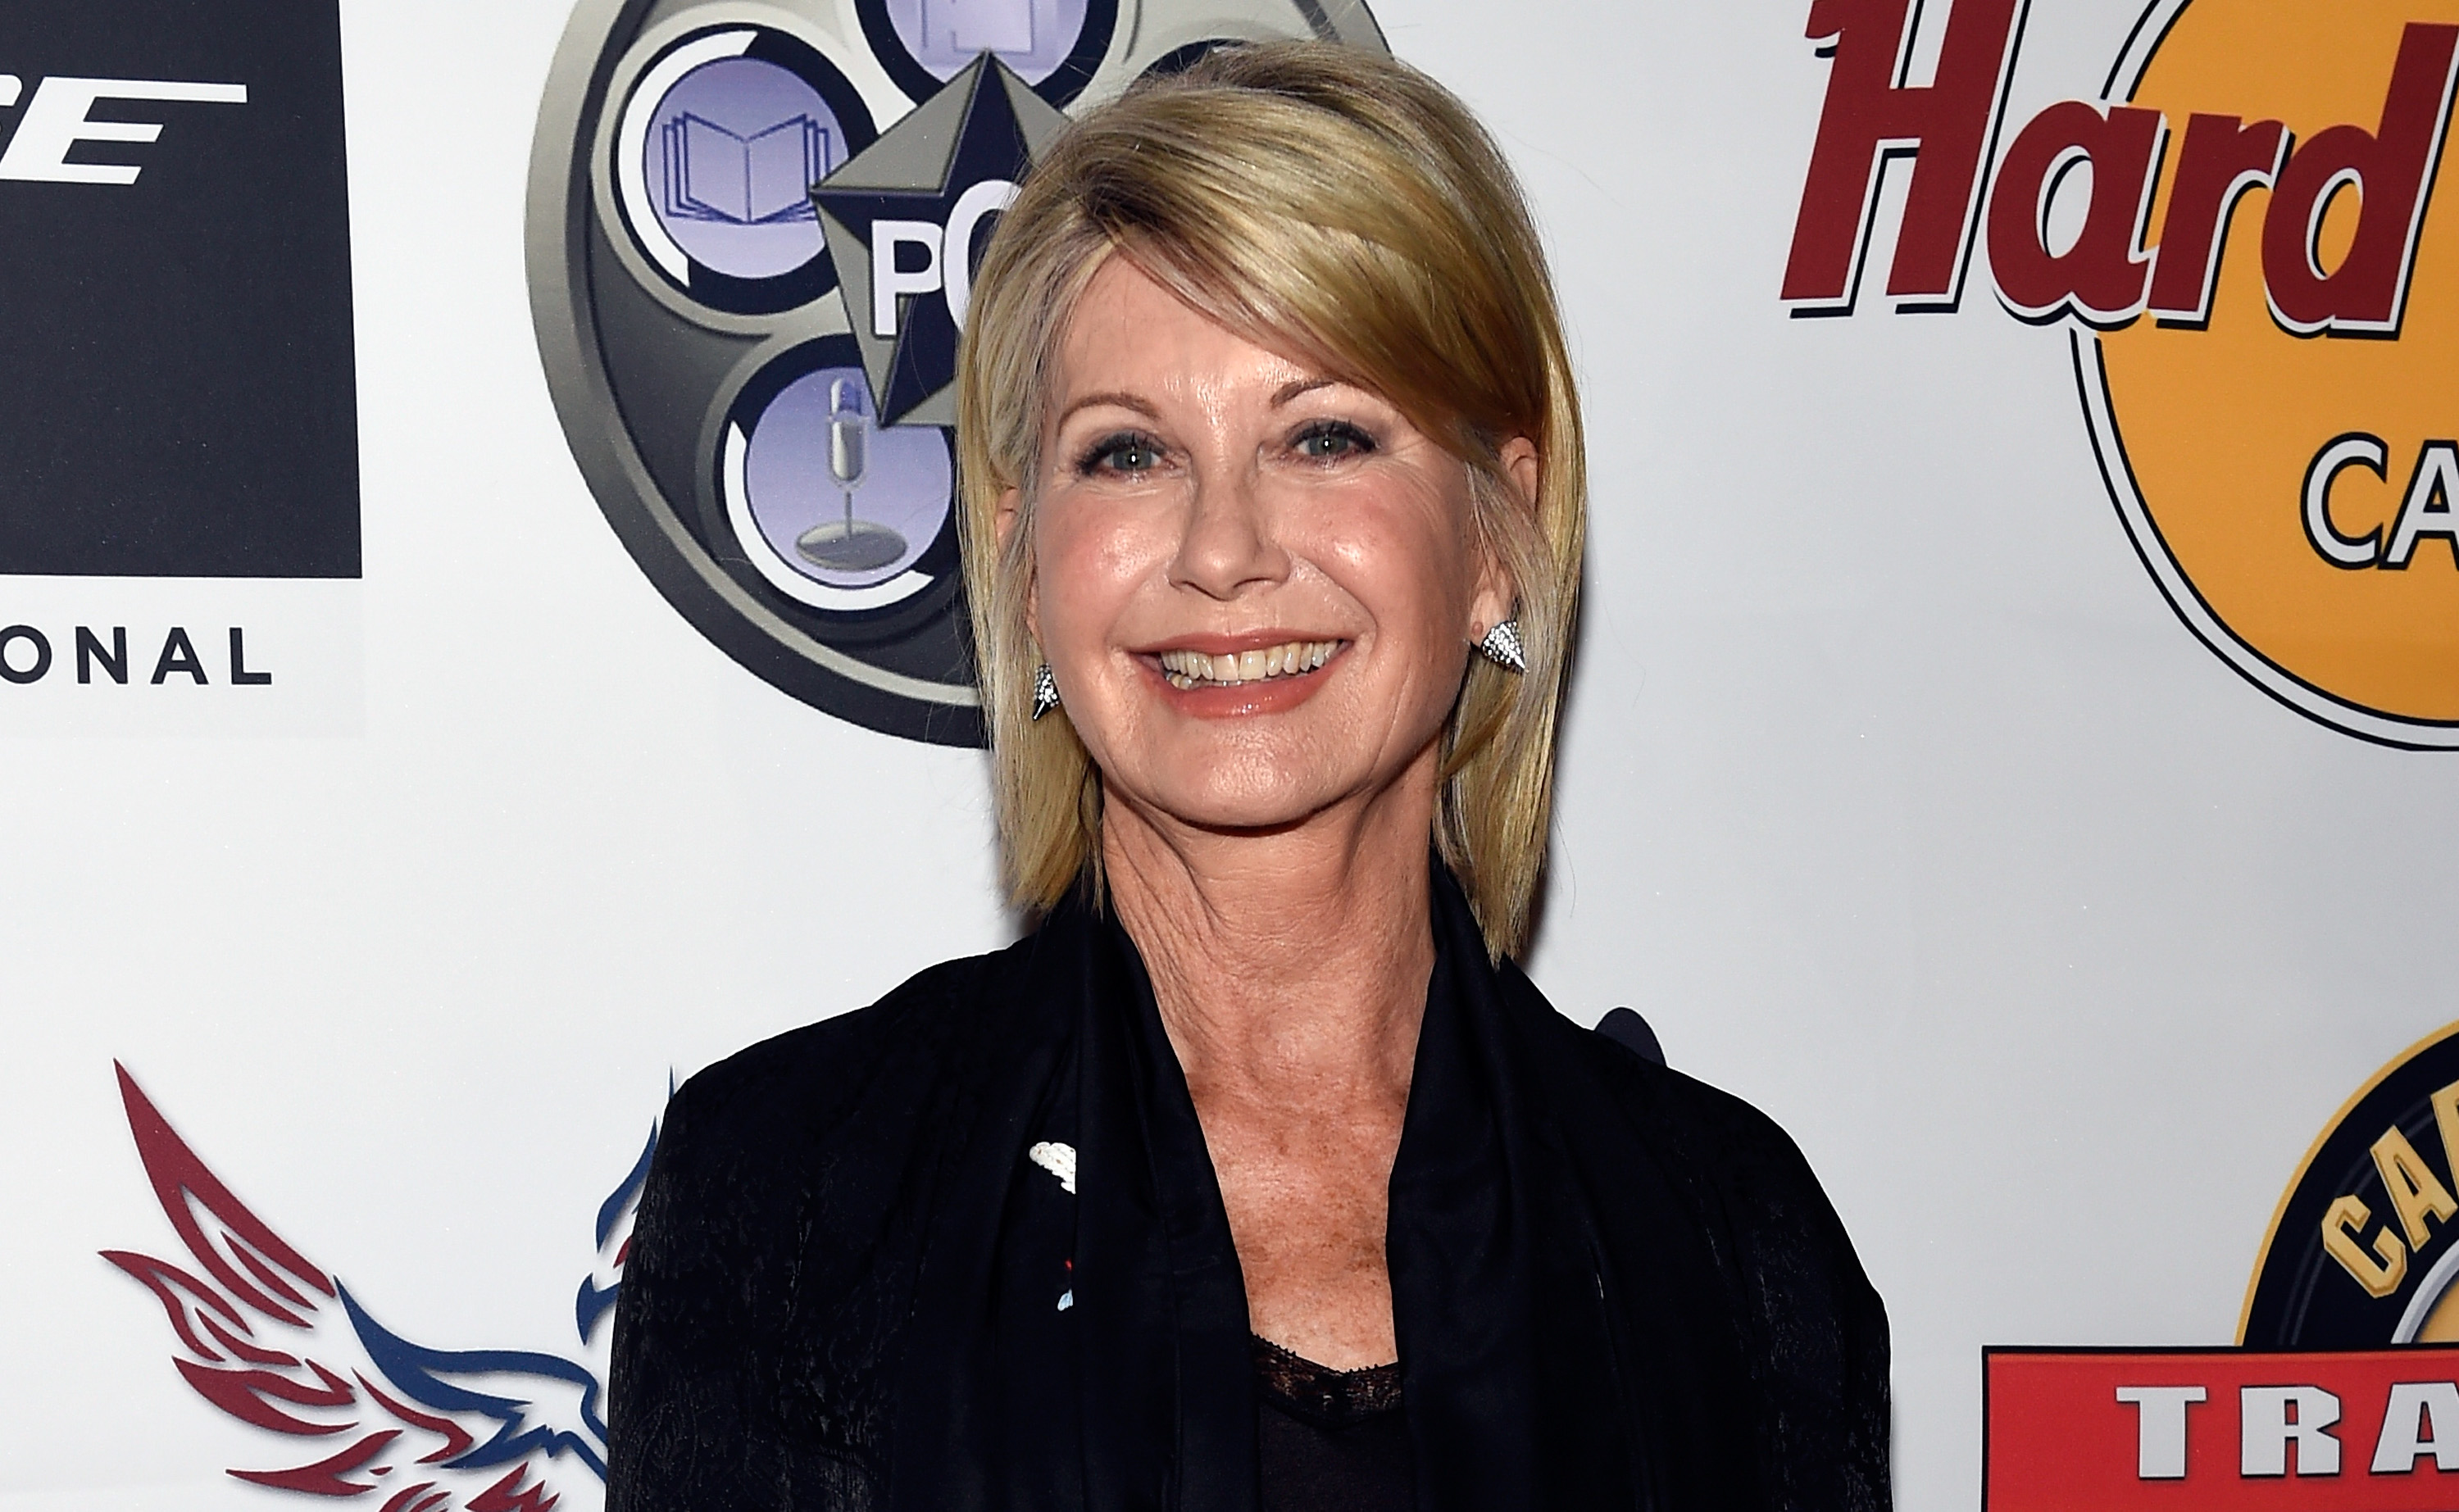 Olivia Newton-John attends the inaugural F.A.M.E Awards presented by the Producers Choice Honors at the Hard Rock Cafe Las Vegas Strip, March 23, 2017.